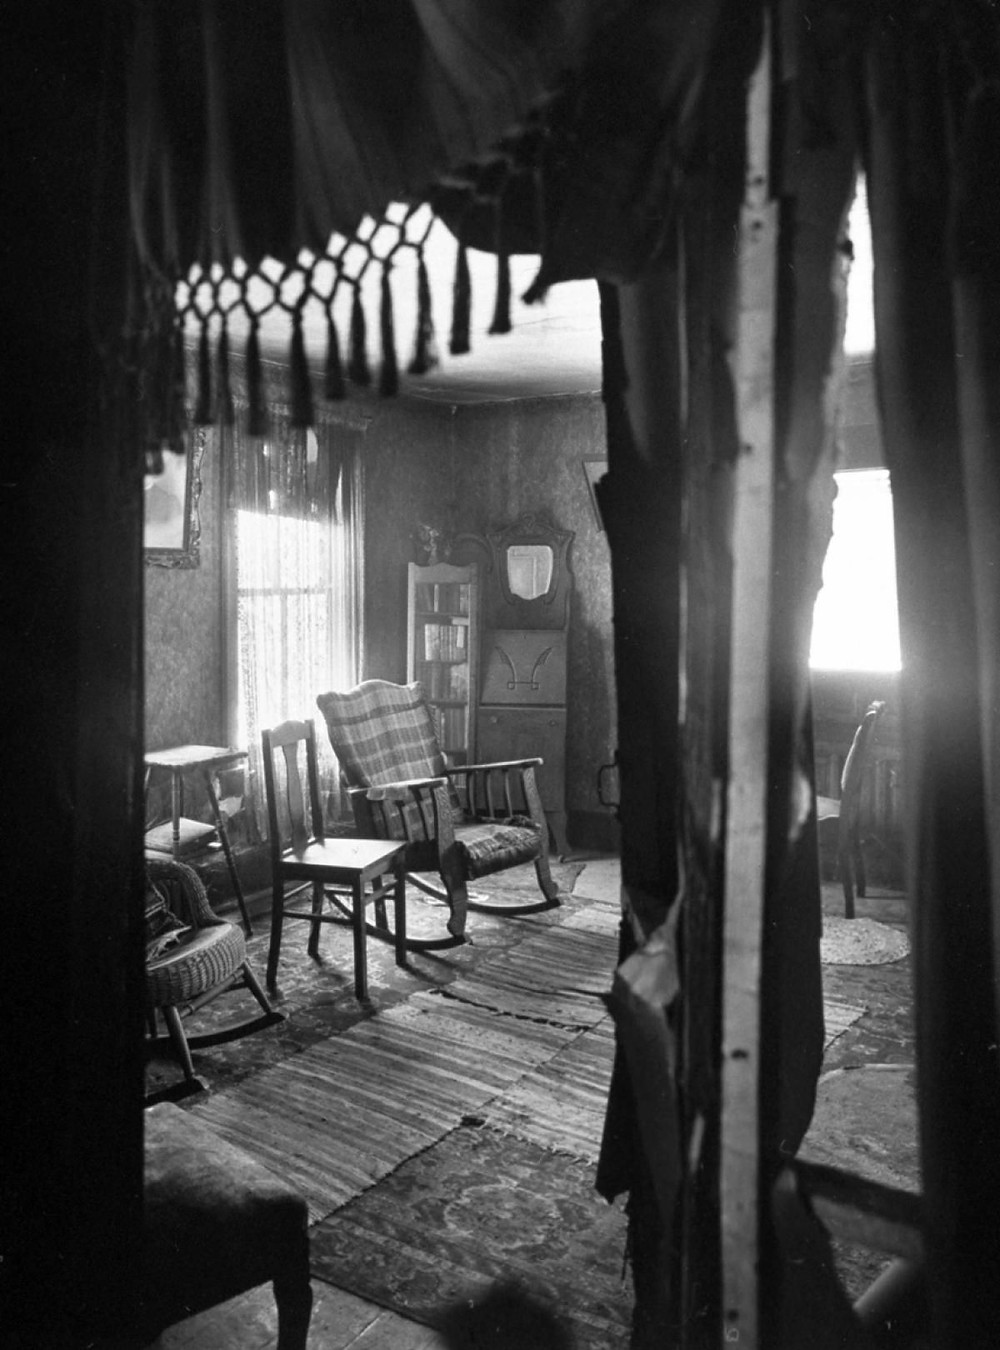 Augusta's room when opened by police